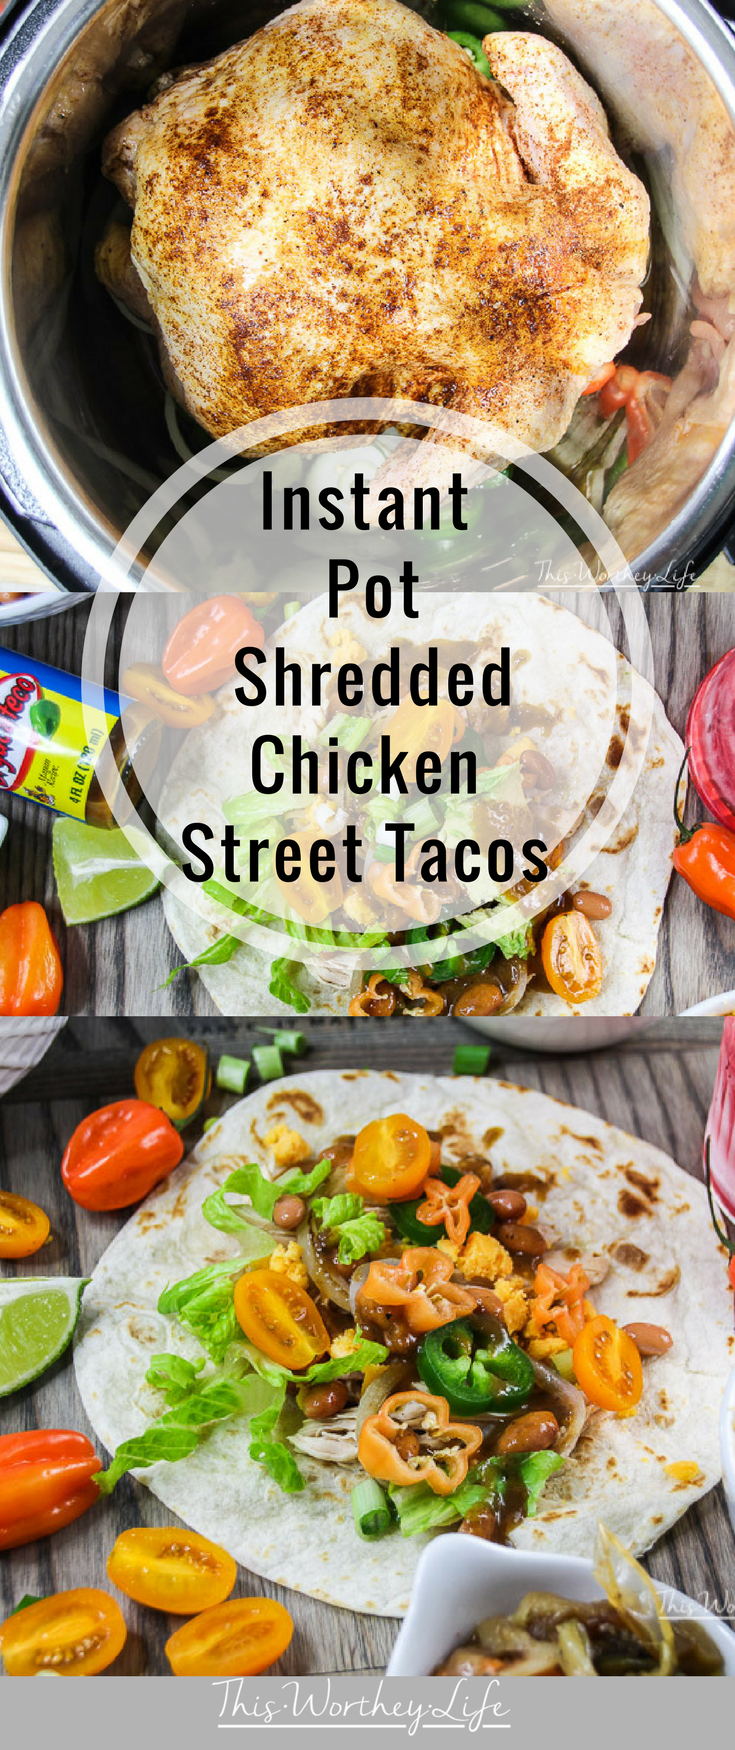 We love to use our Instant Pot and create easy recipe ideas. We cooked a whole chicken in the Instant Pot and made Shredded Chicken Street Tacos. It's a budget-friendly recipe, made in 30 minutes, and one that the whole family will love! Check out how to make Instant Pot Shredded Chicken Street Tacos on the blog!